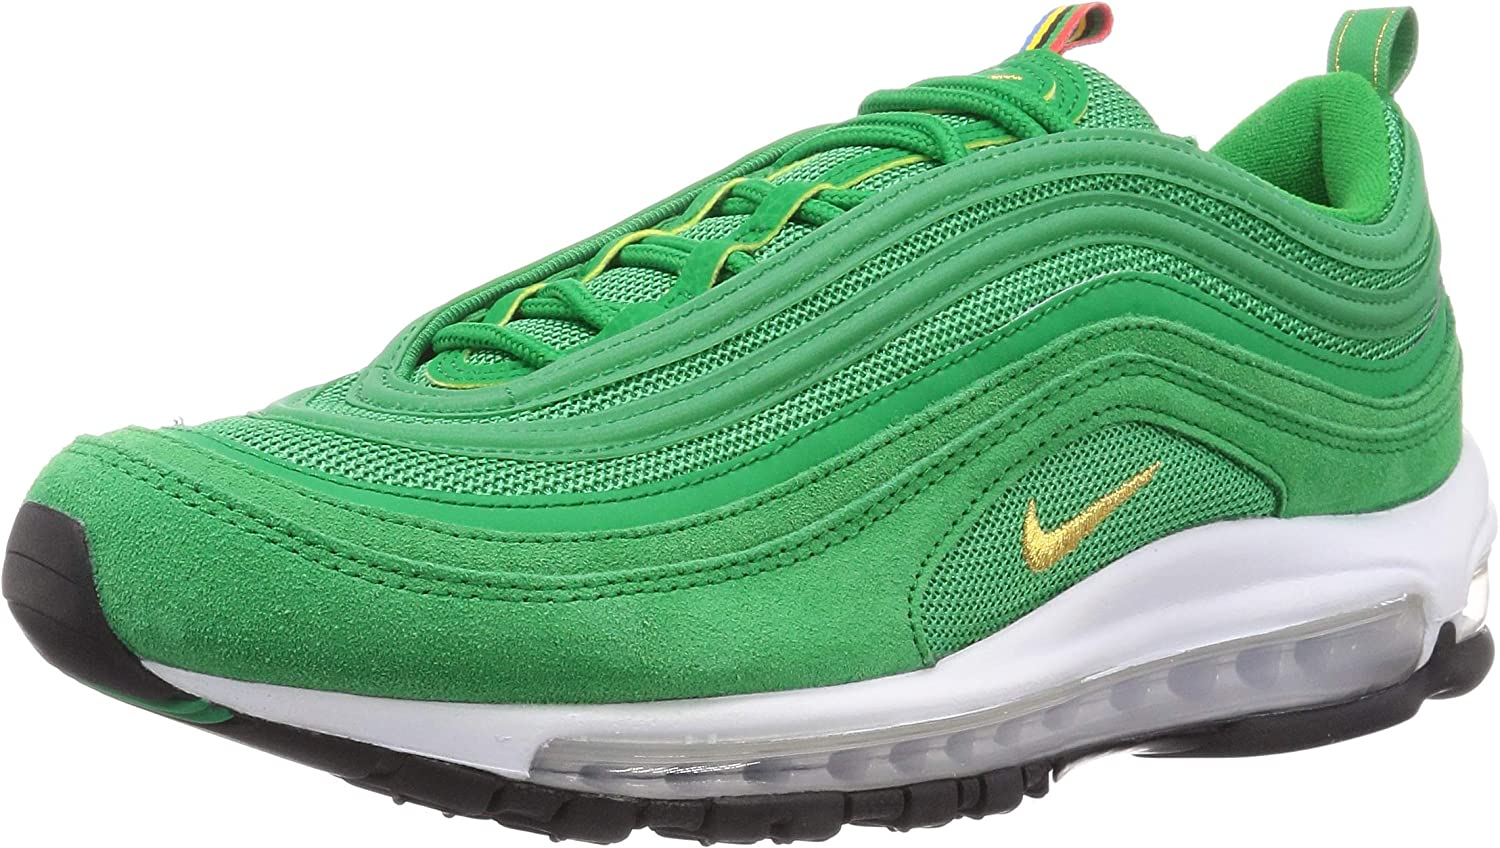 Store Nike Air Clearance SALE! Limited time! Max 97 Mens Qs Shoes